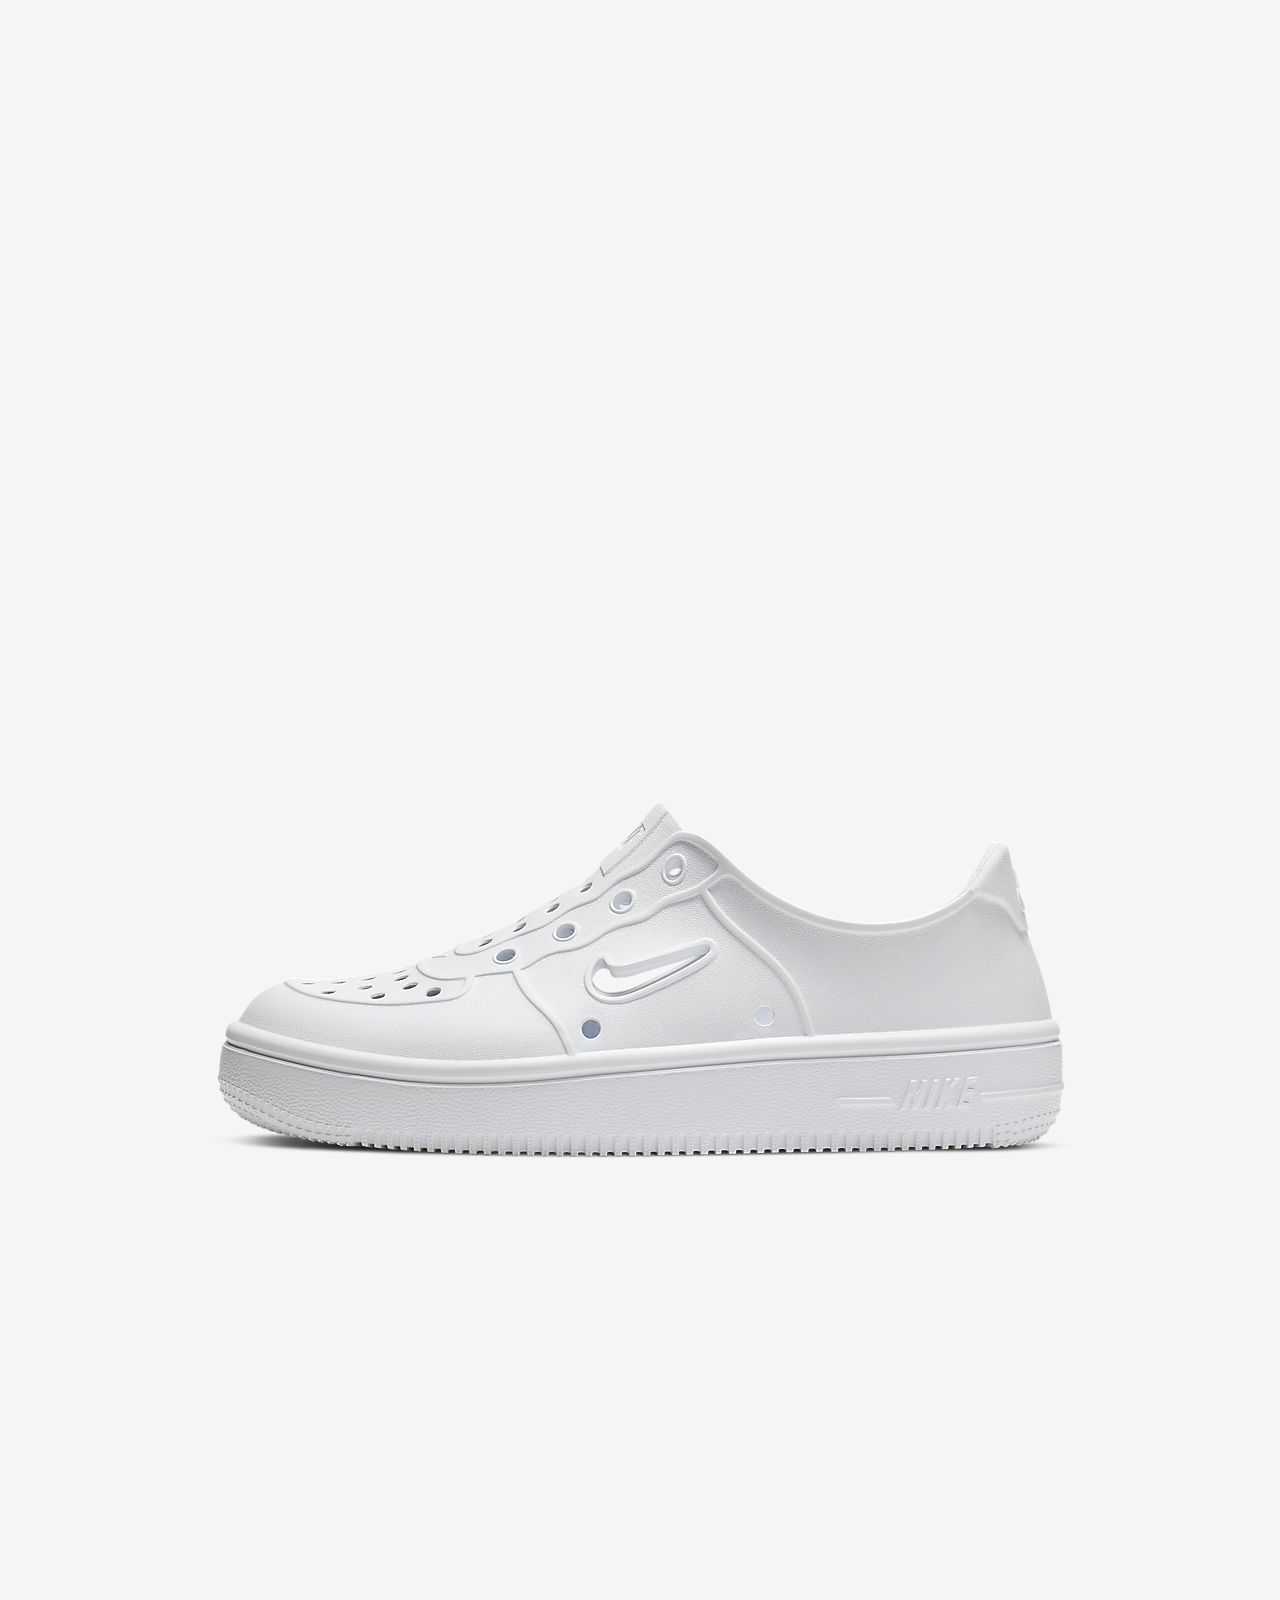 Sko Nike Foam Force 1 för barn